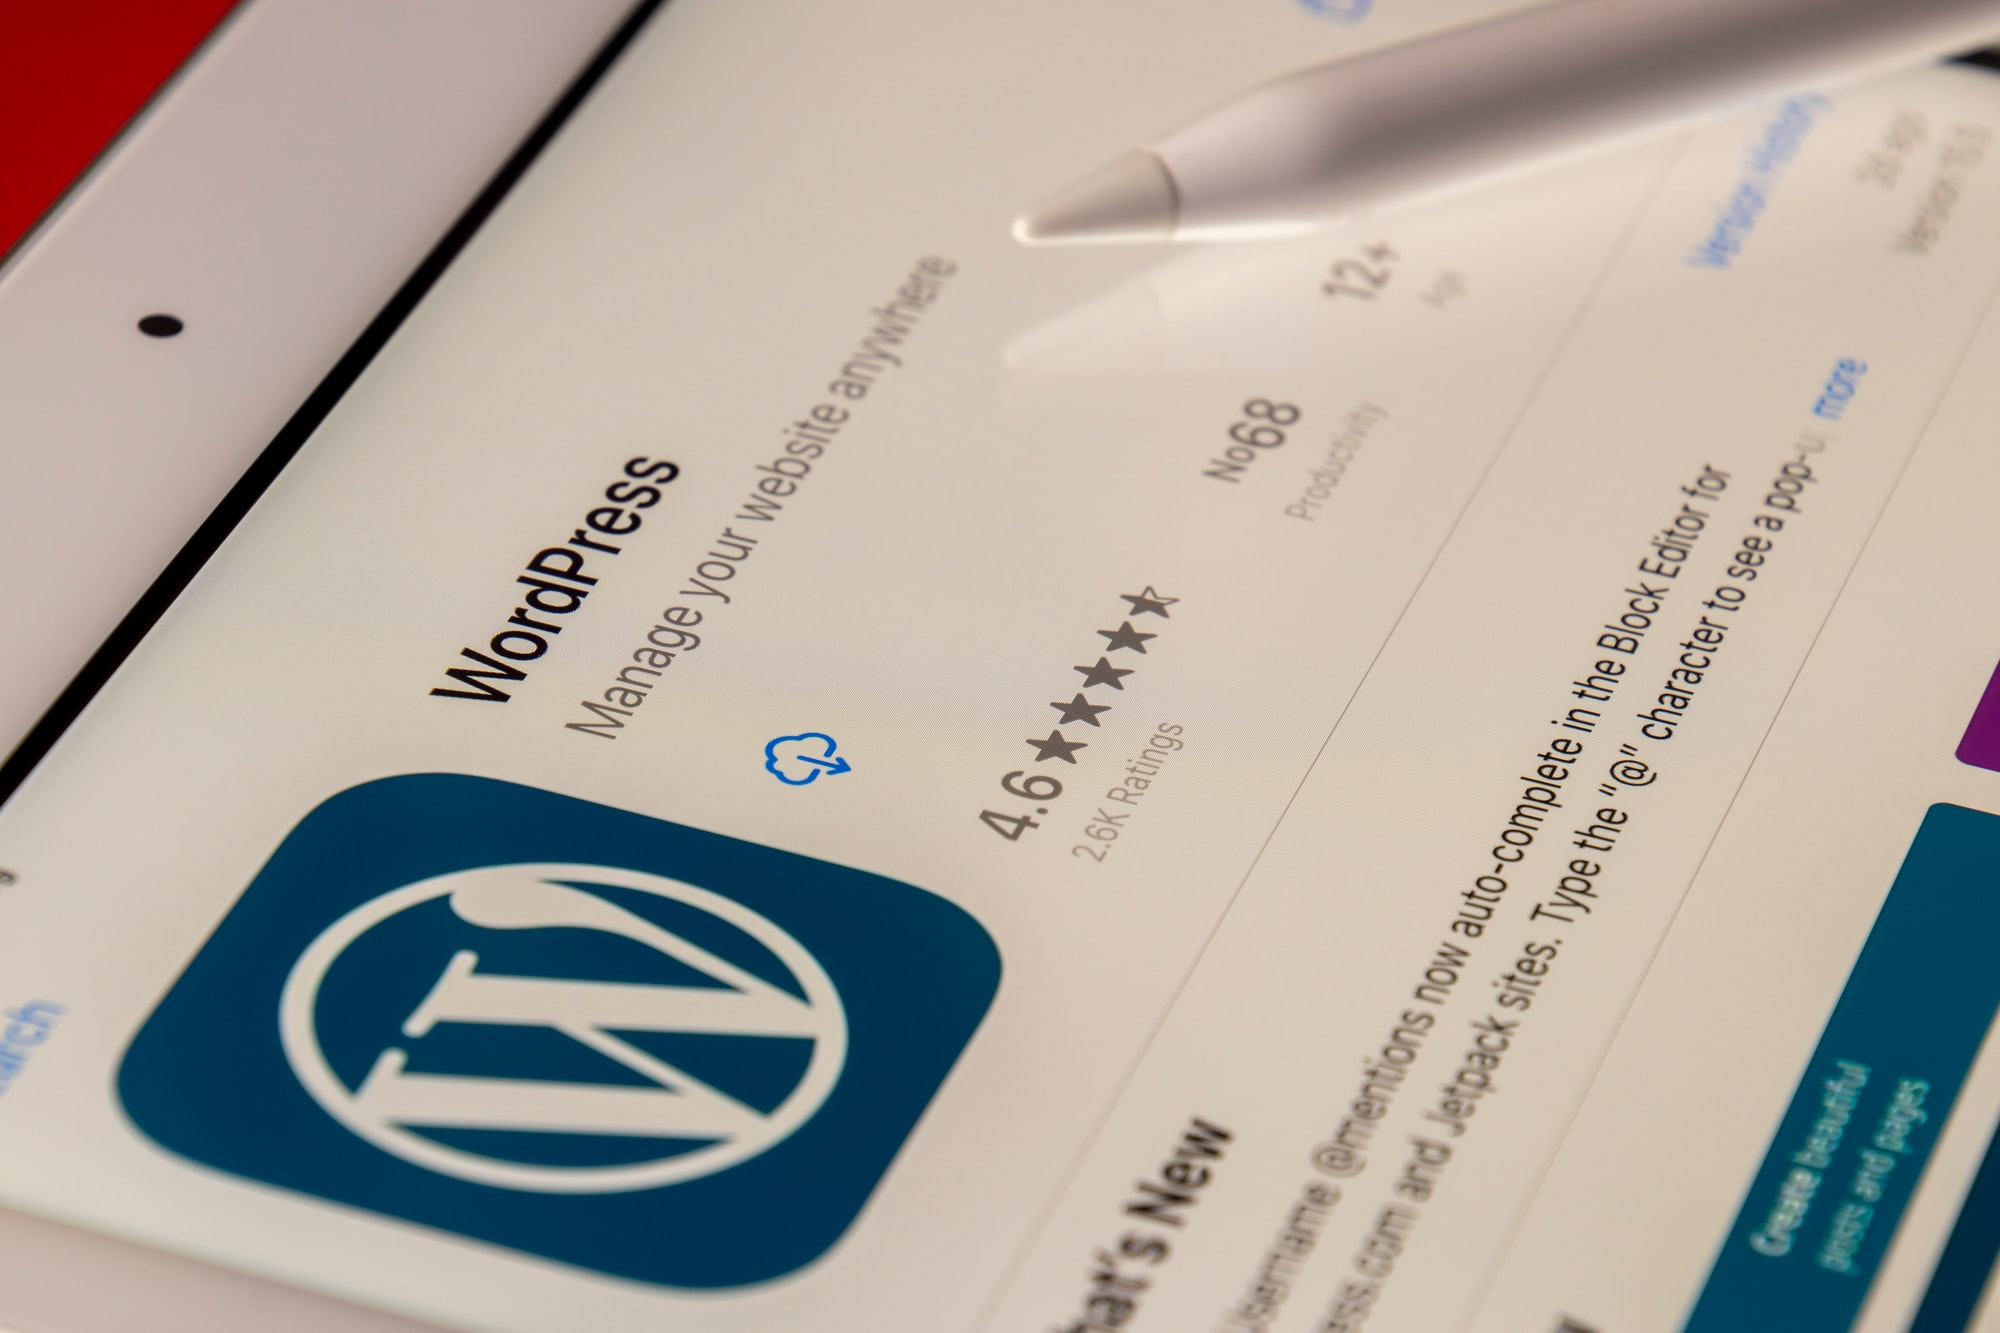 How to build a WordPress site in less than 5 min using AWS